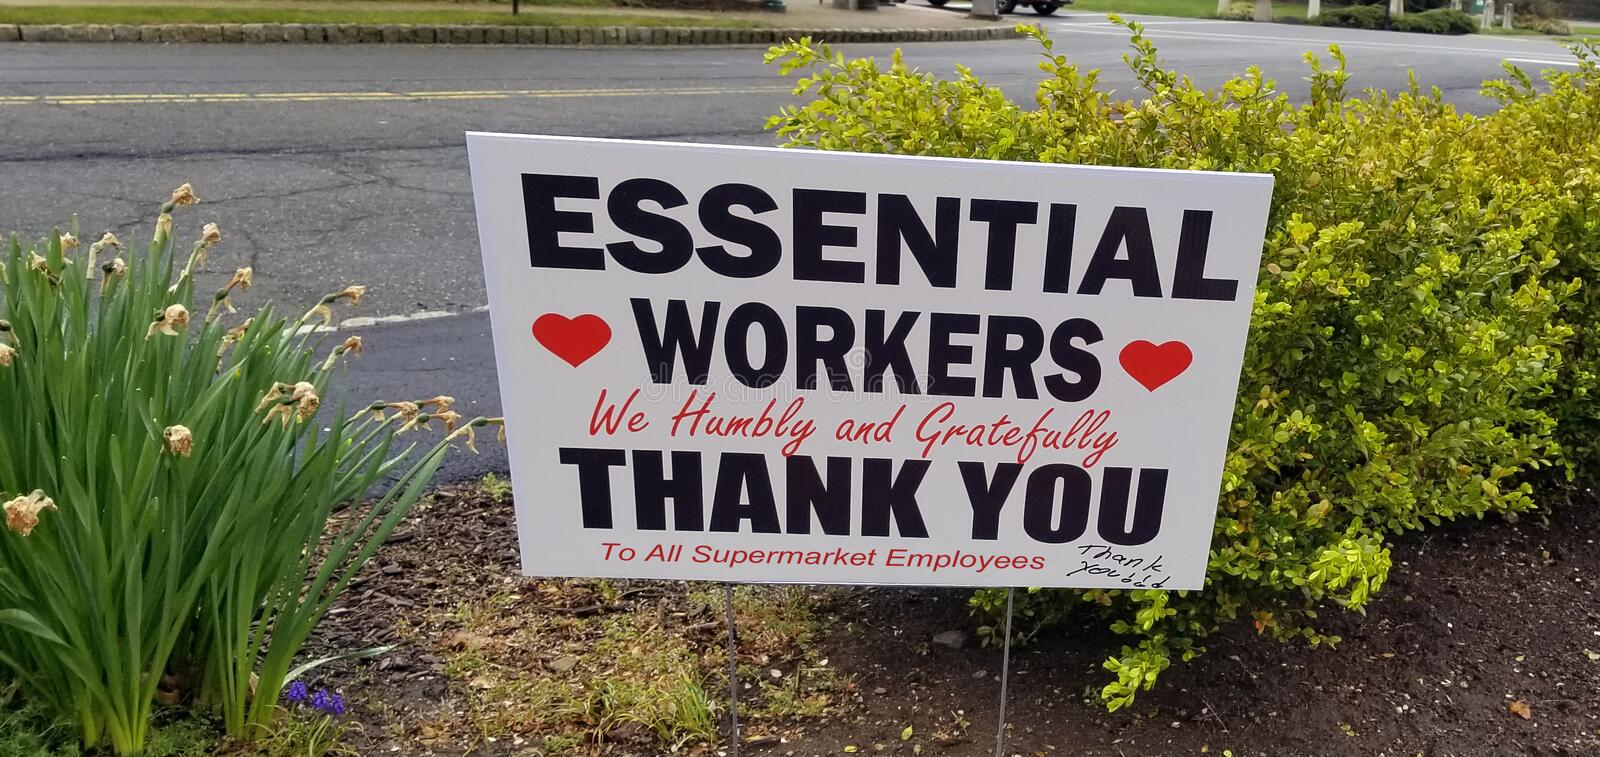 Essential Workers Sign royalty free stock photo